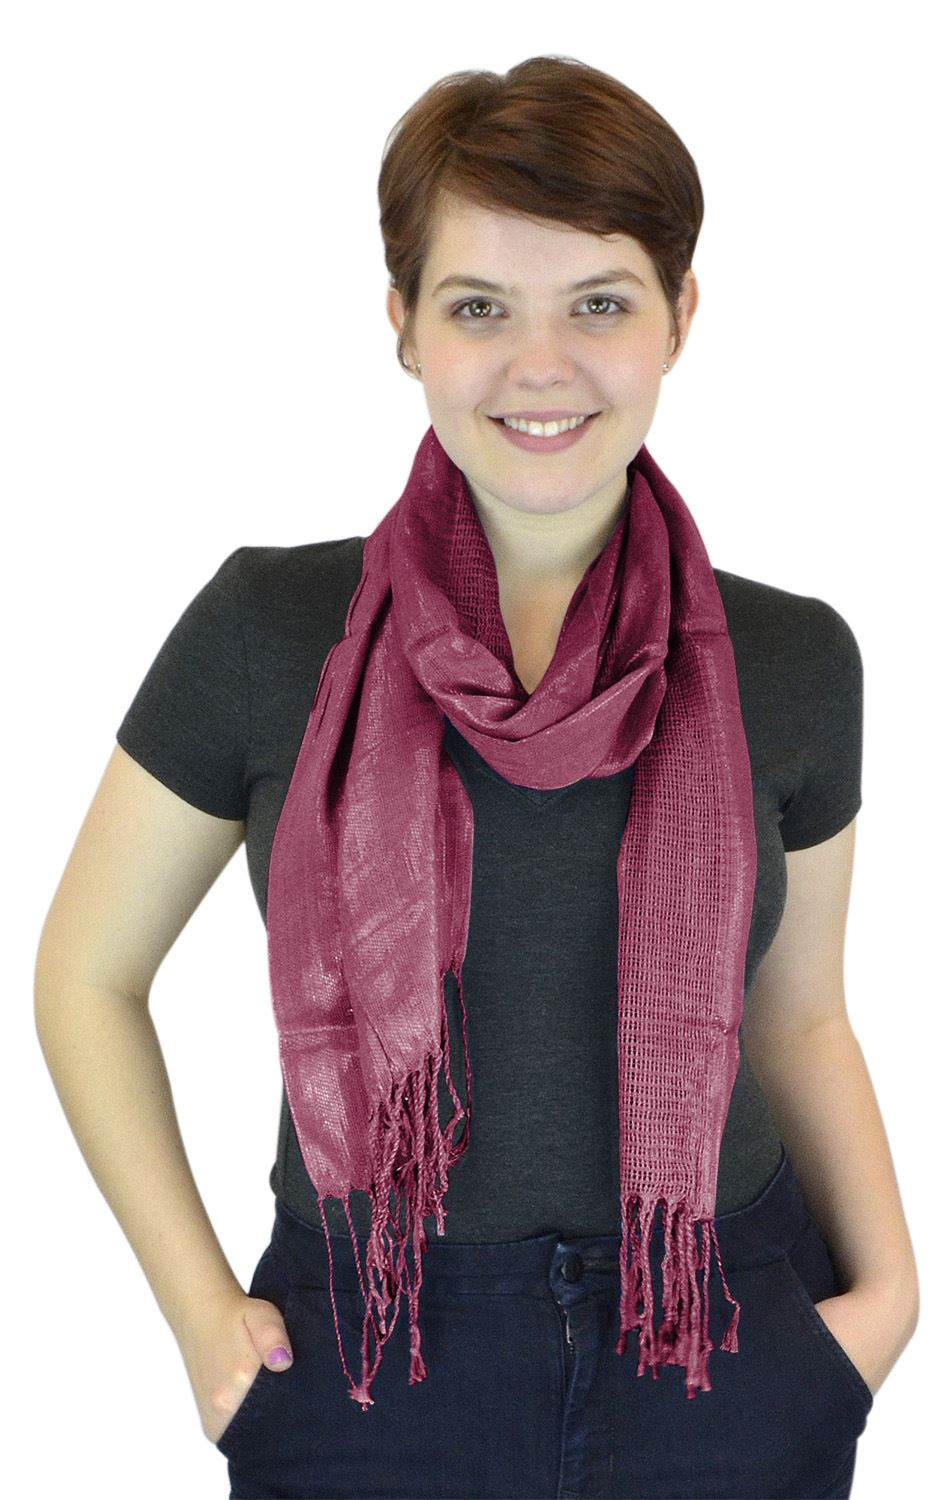 Belle Donne - Women's Everyday Sheer Polyester Scarf Casual Formal - Burgundy